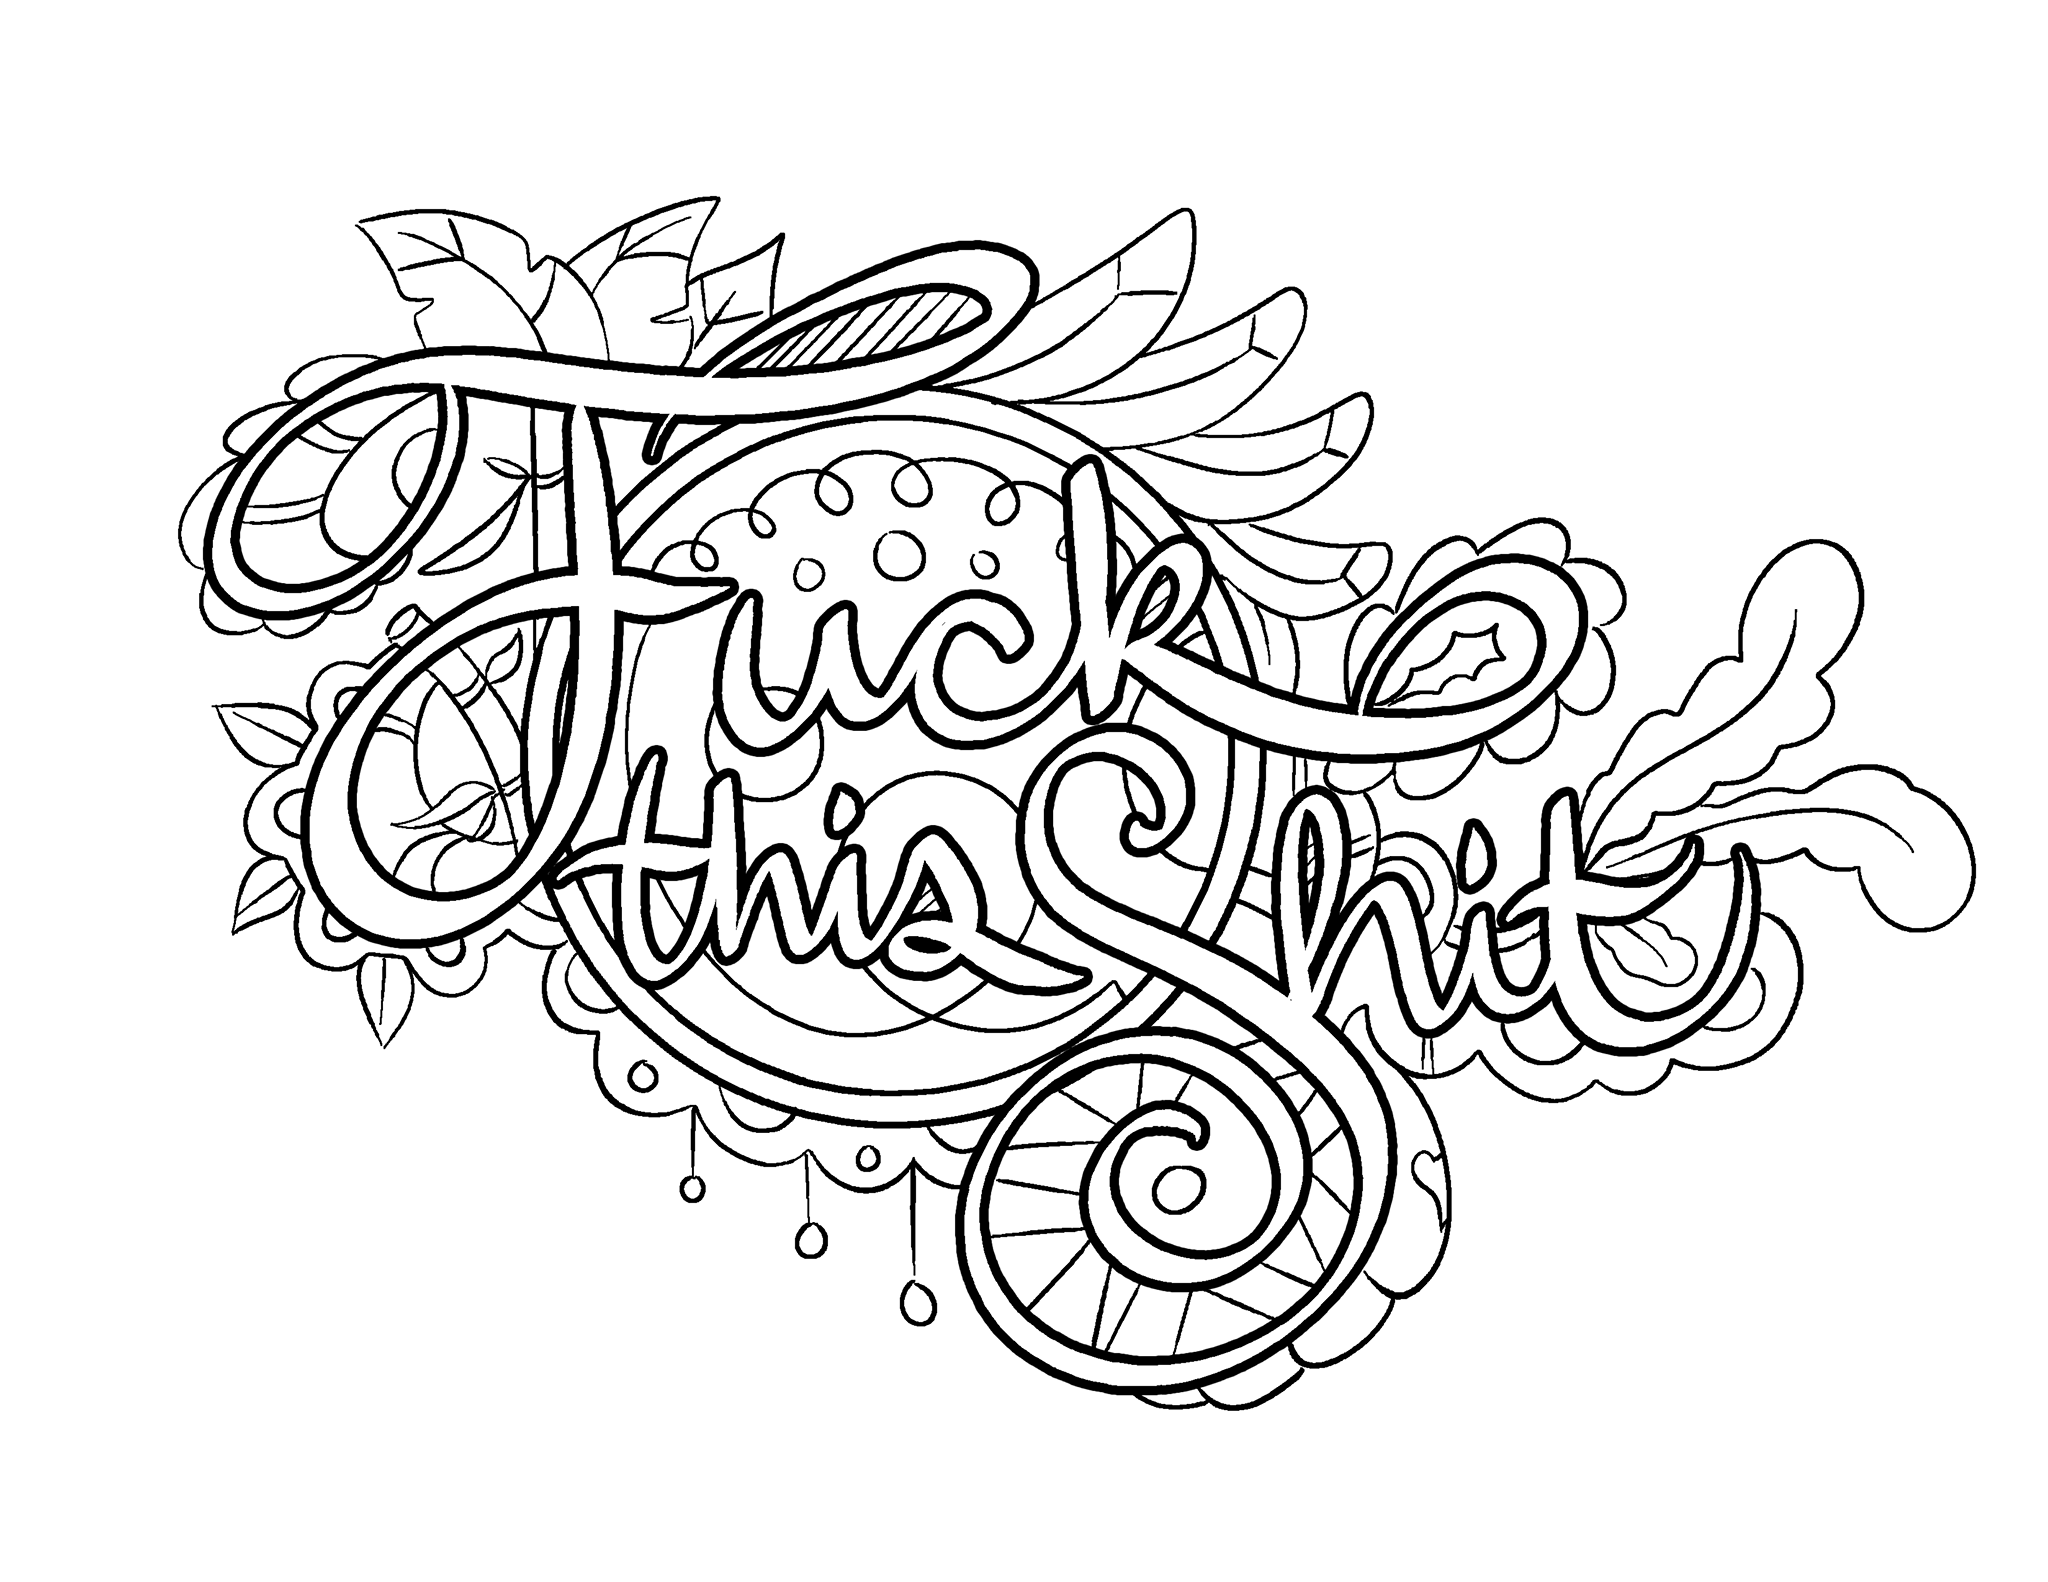 Fuck This Shit Coloring Page By Colorful Language © 2015 Posted